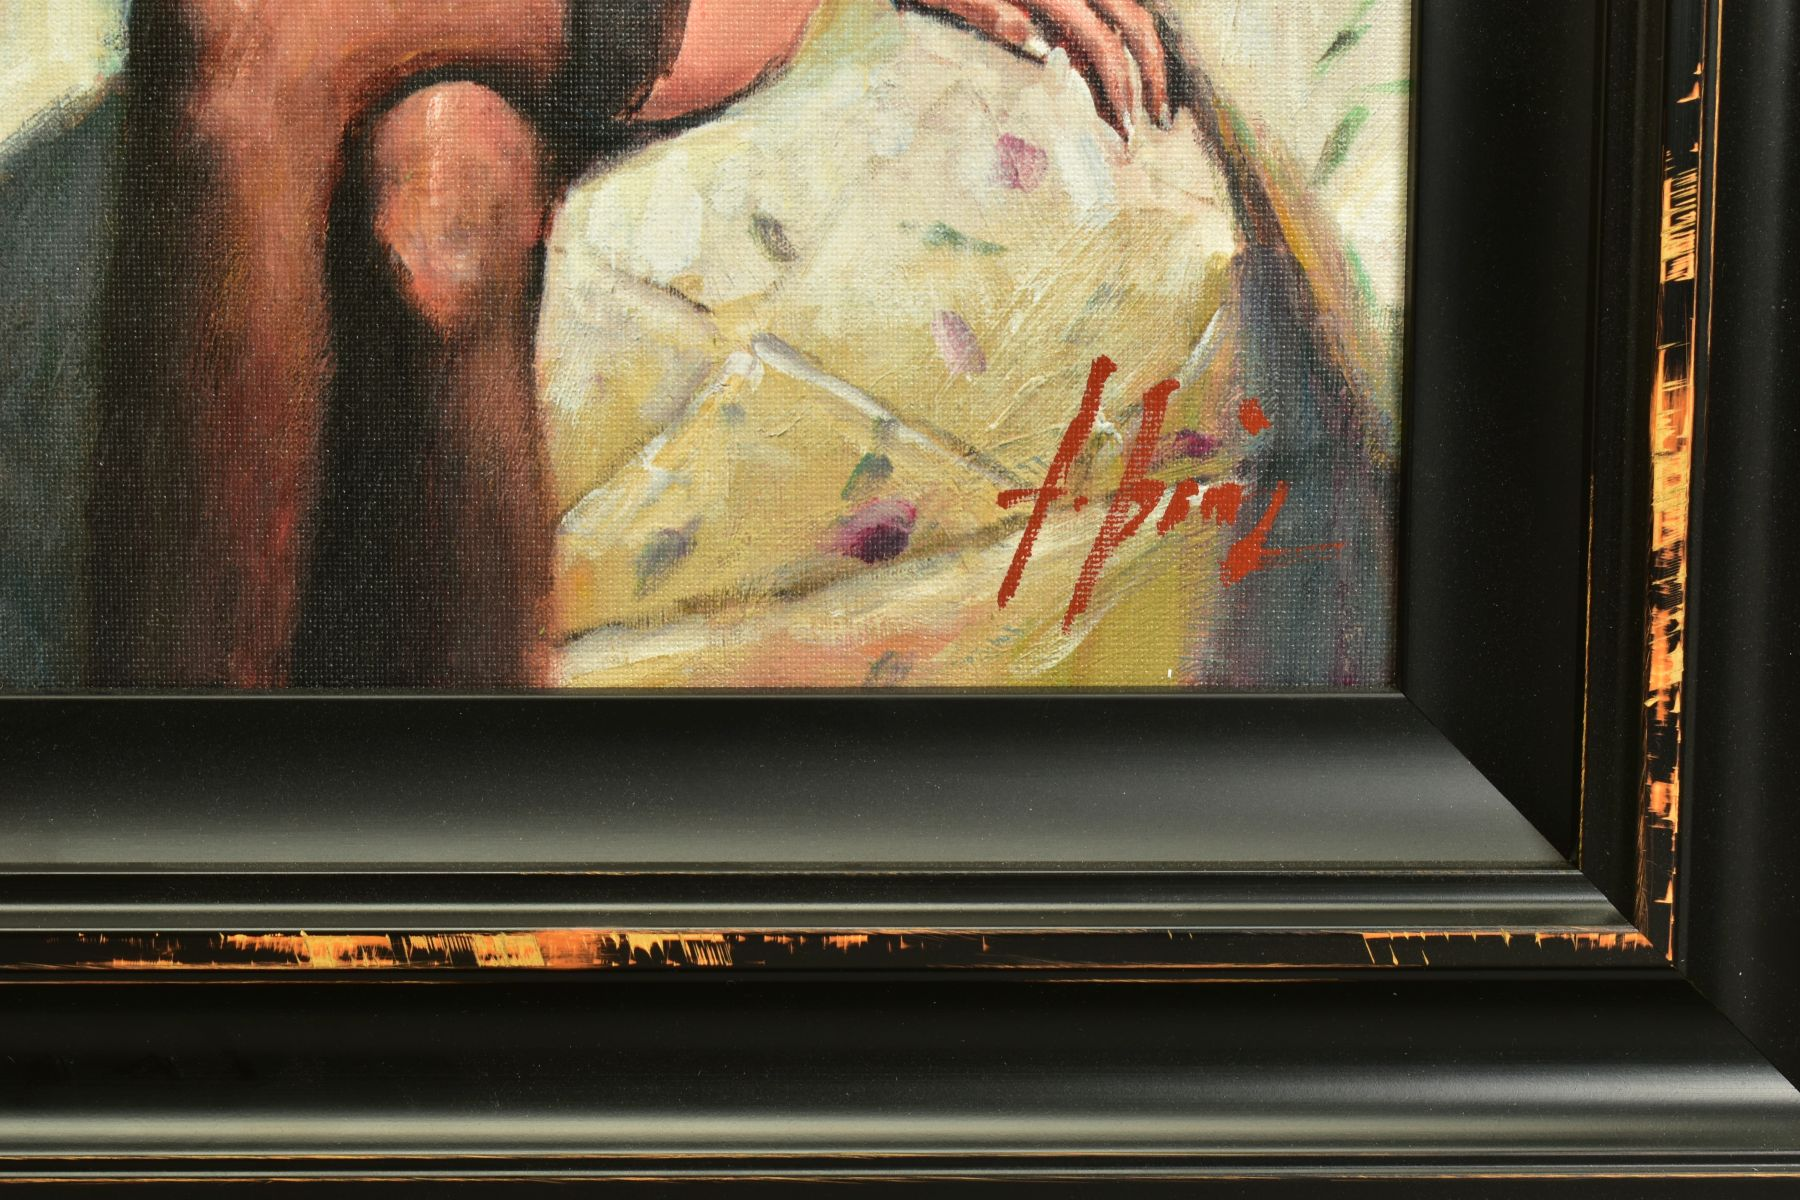 FABIAN PEREZ (ARGENTINA 1967), 'Kayleigh at The Ritz', a Limited Edition print of a female figure, - Image 4 of 8